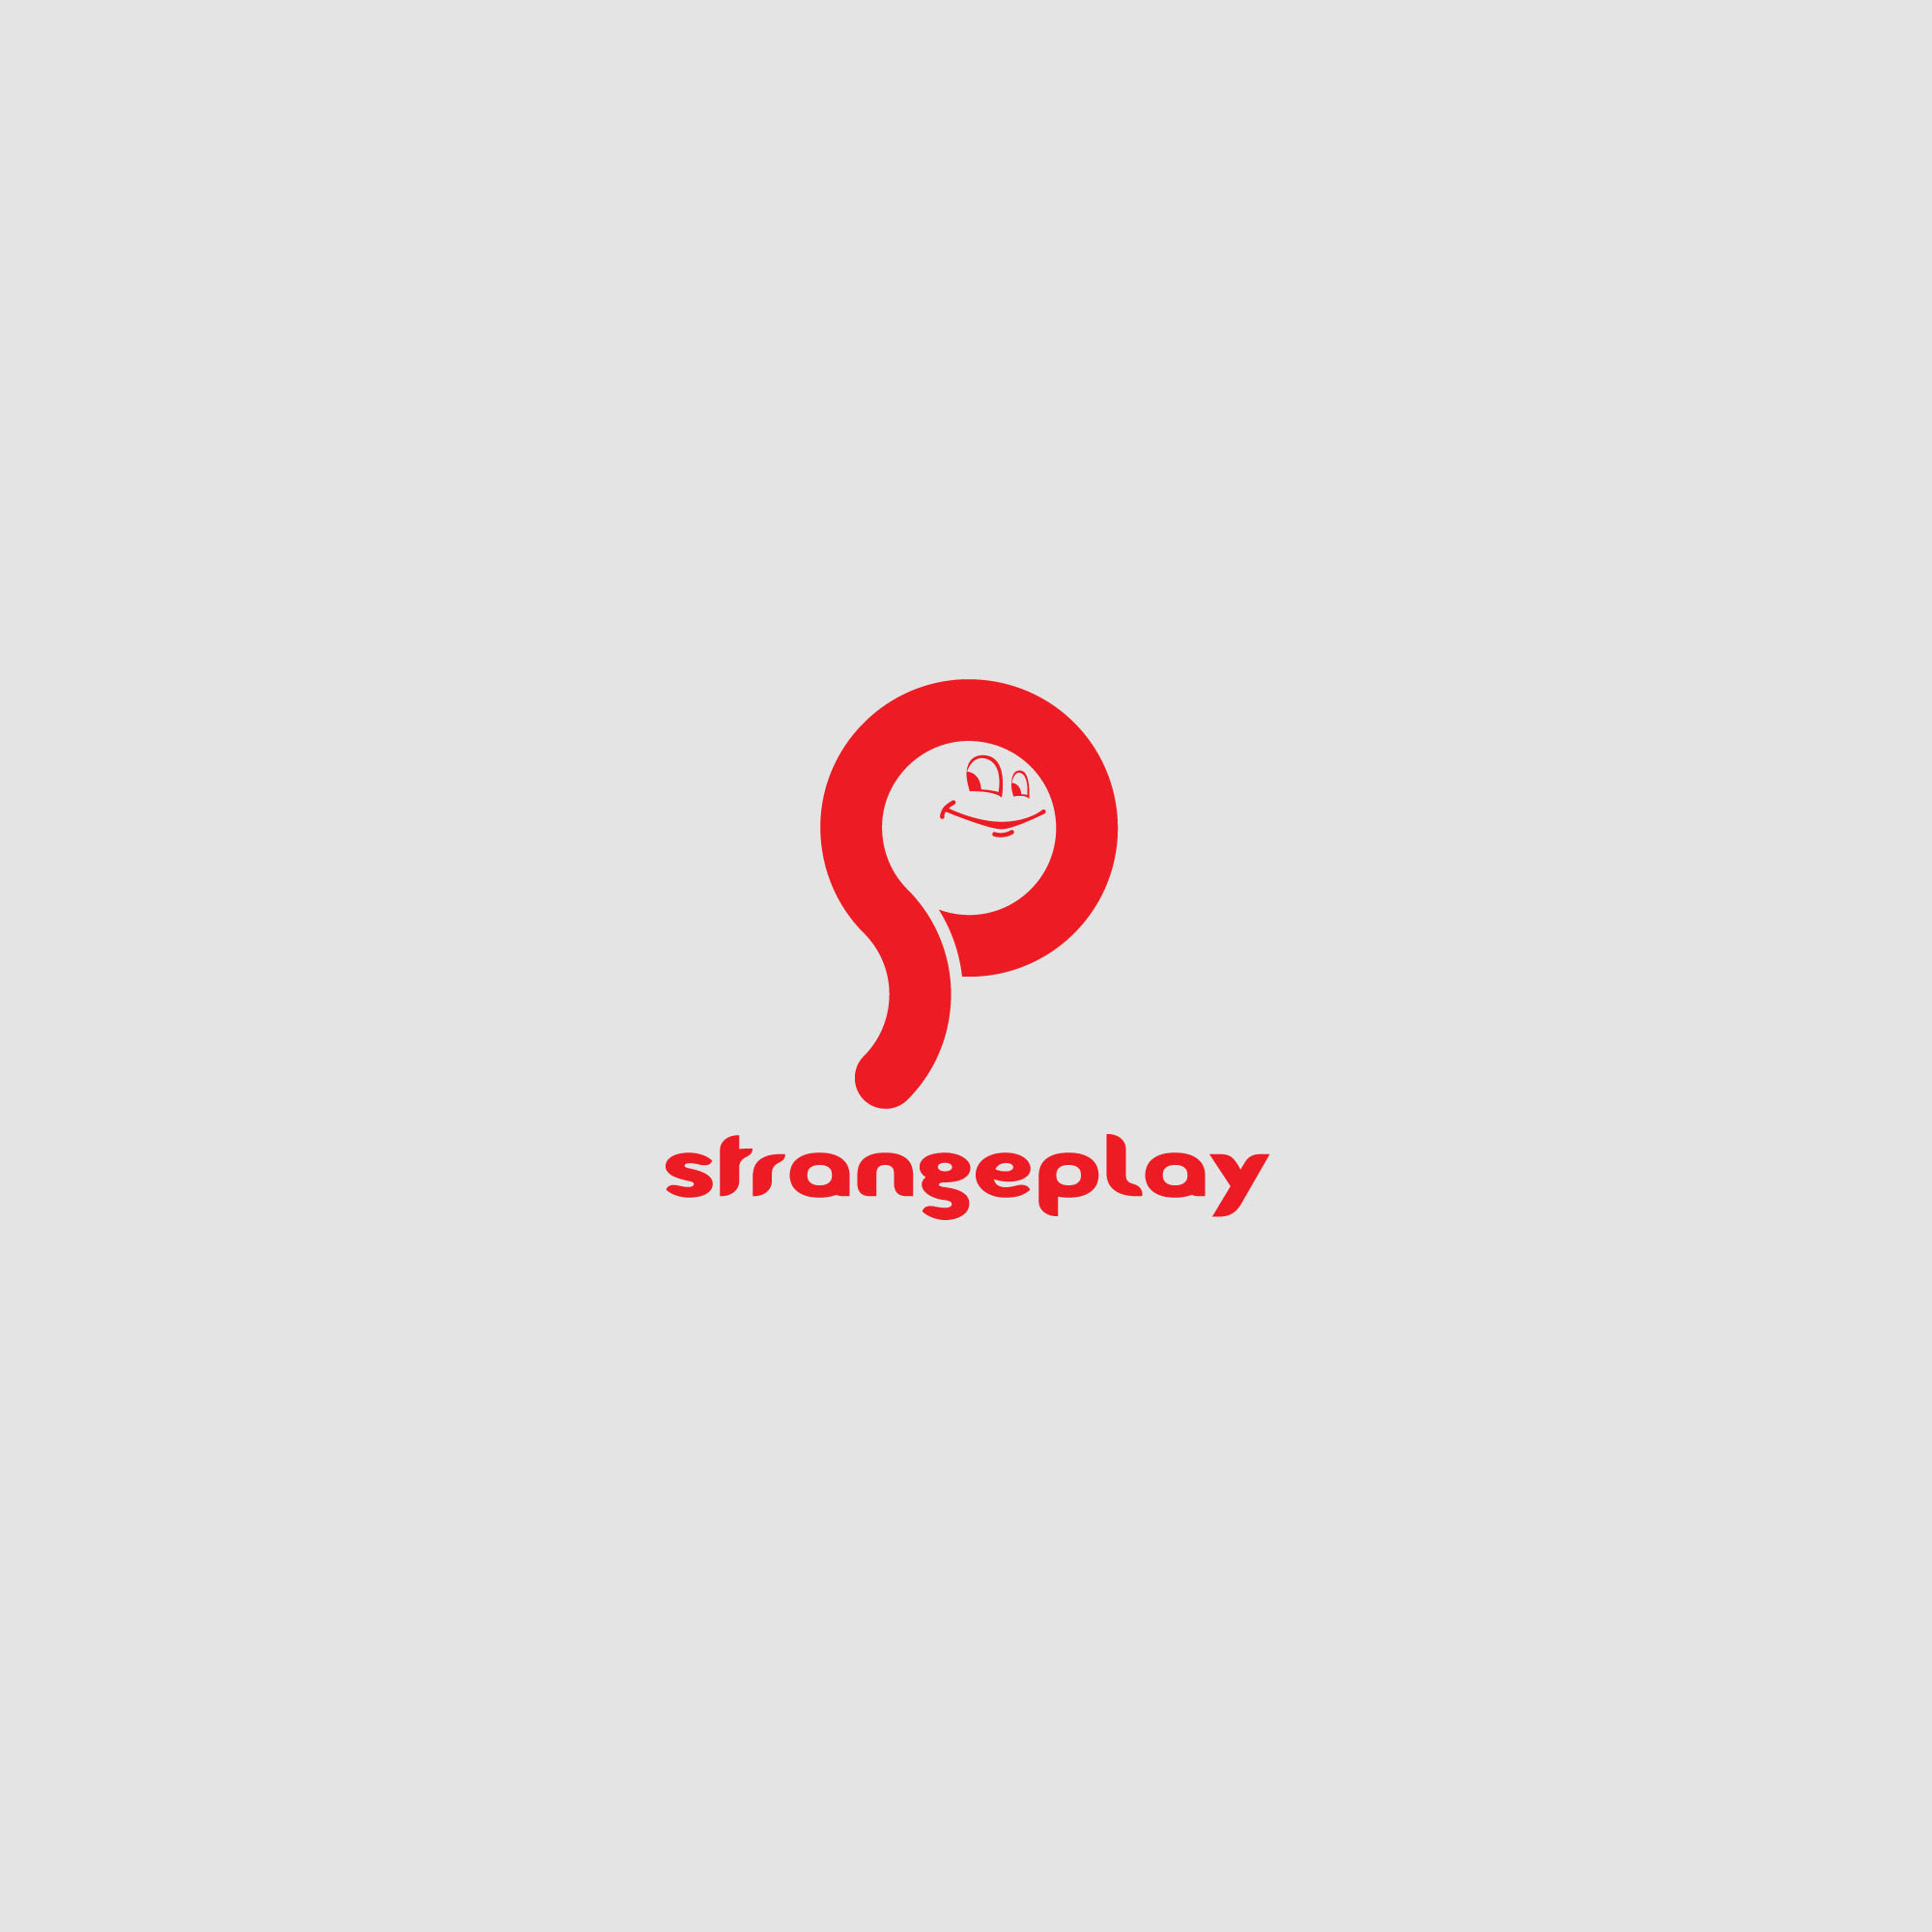 Logo Design by tanganpanas - Entry No. 109 in the Logo Design Contest Strange Play Logo Design.